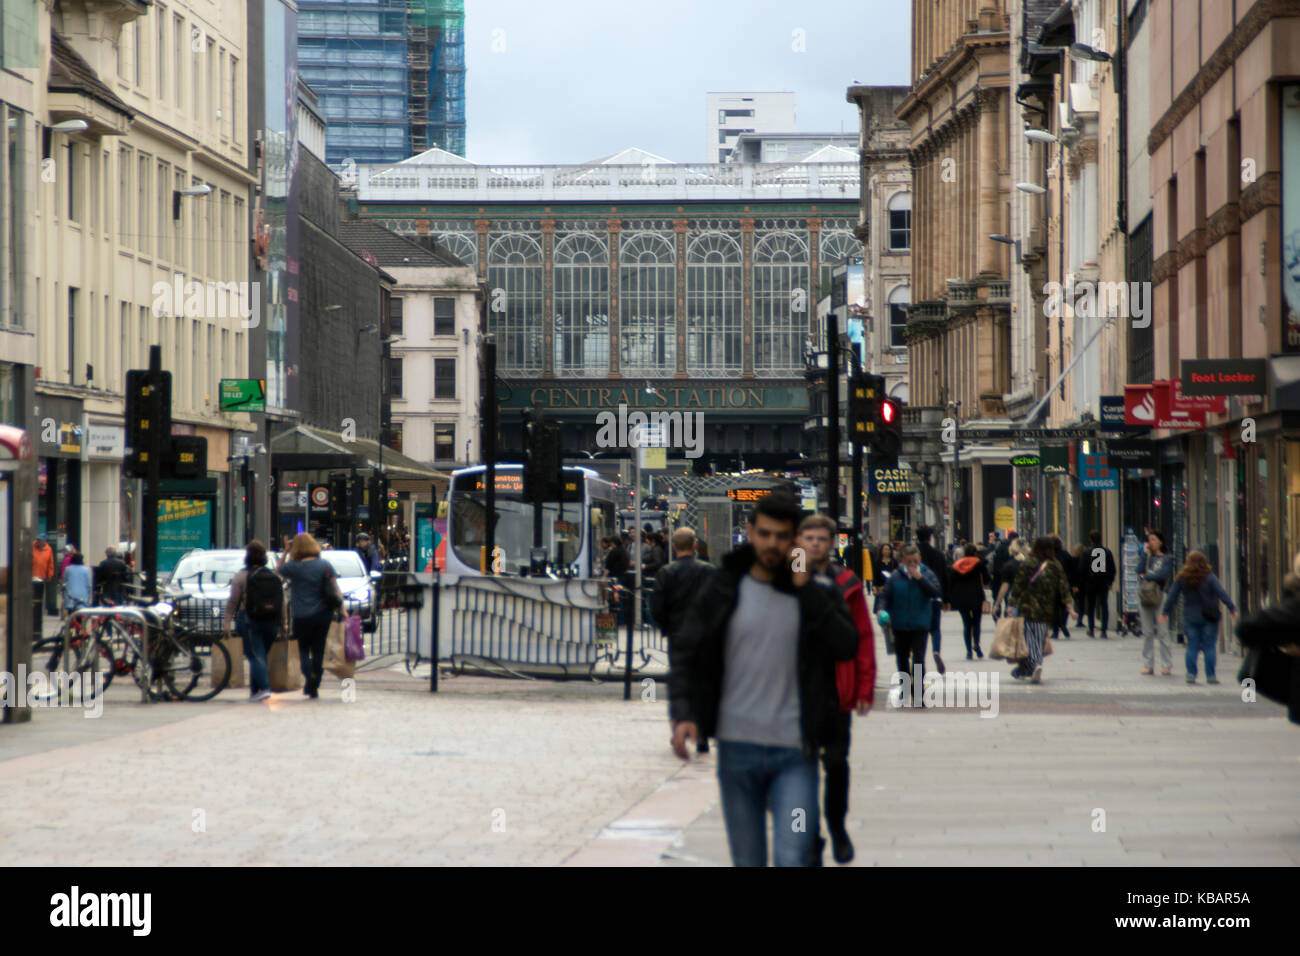 View along Argyle Street, towards Central Station and the Hielanman's Umbrella, Glasgow, Scotland Stock Photo